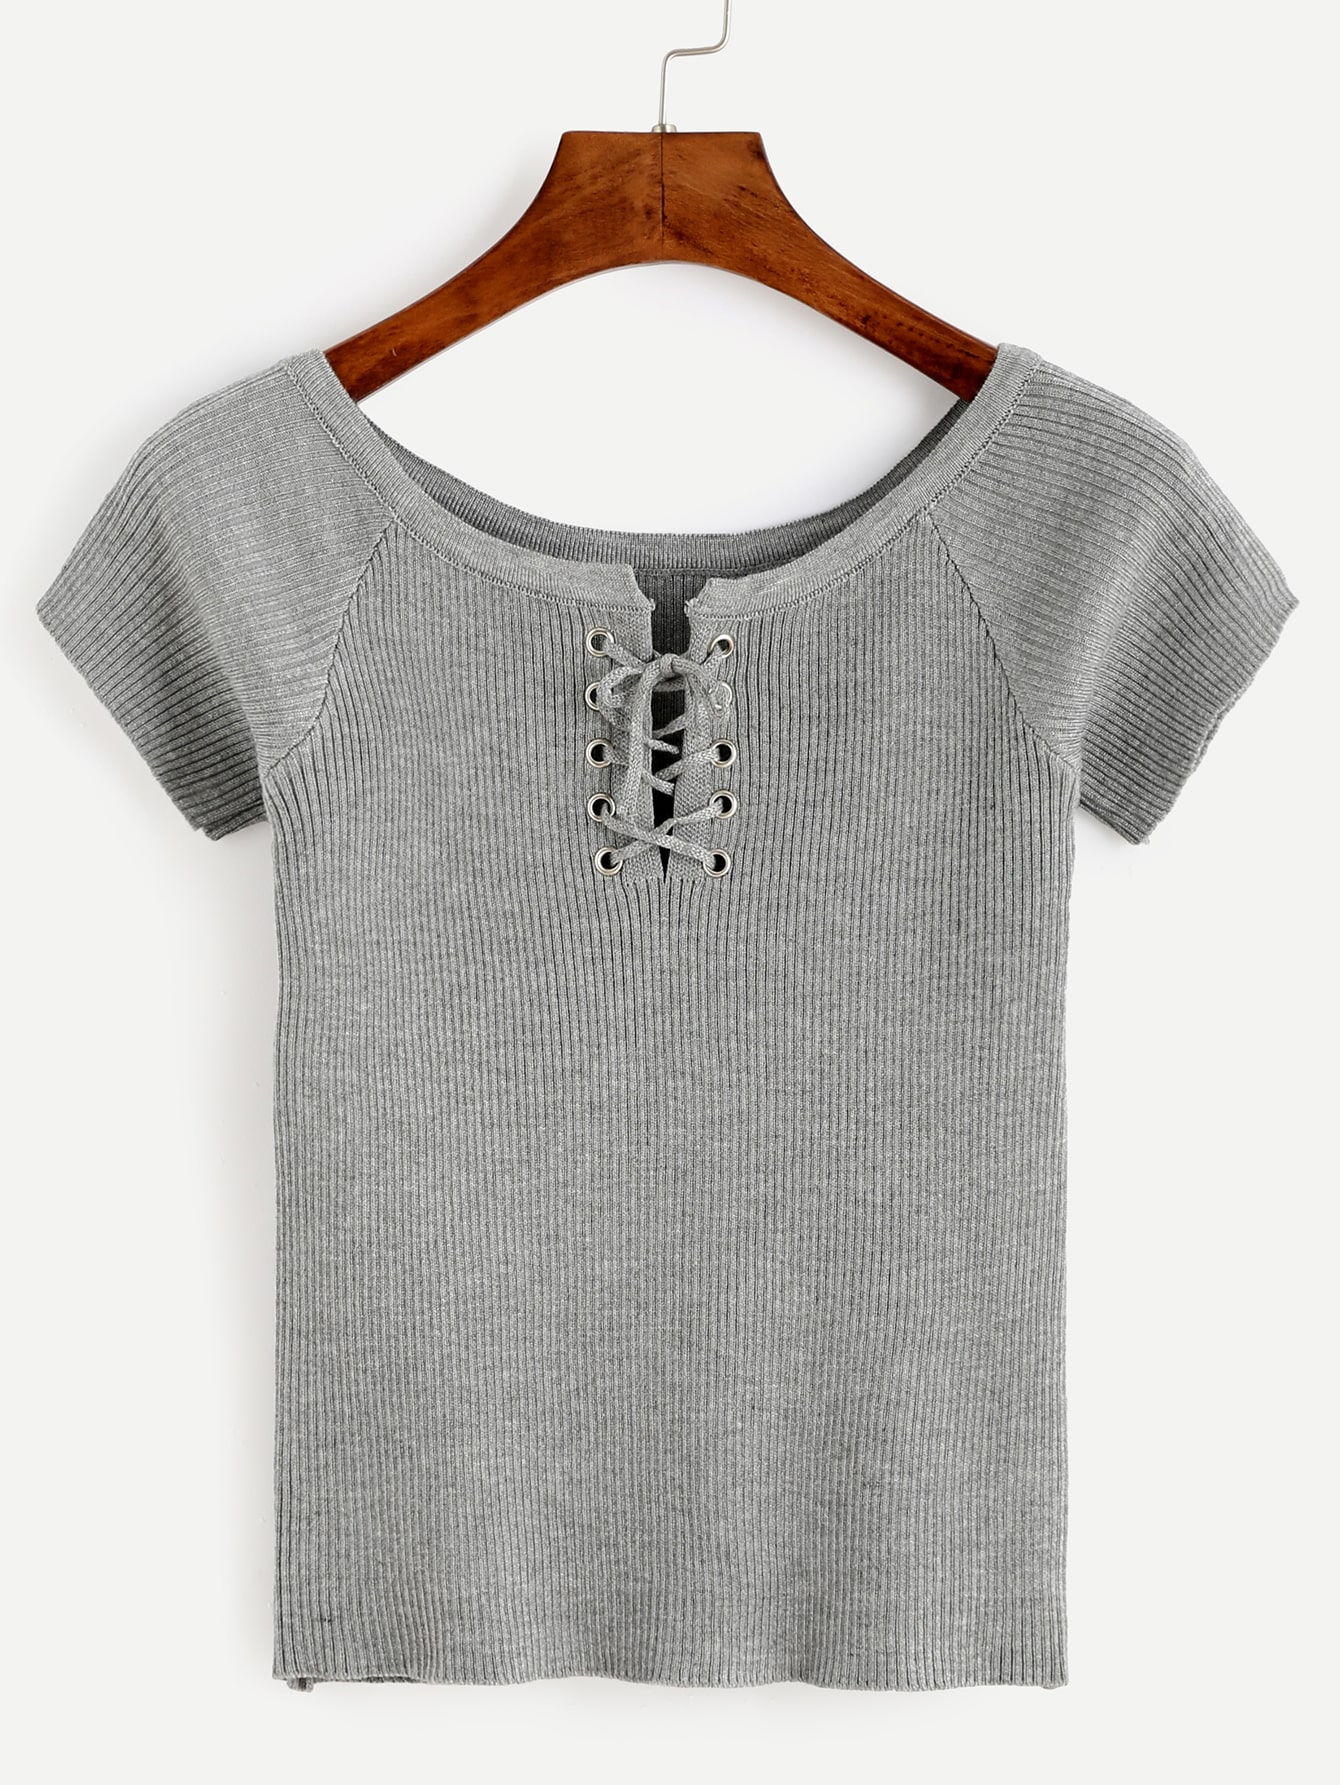 Heather Grey Eyelet Lace Up Ribbed T-shirt RTSH160801027